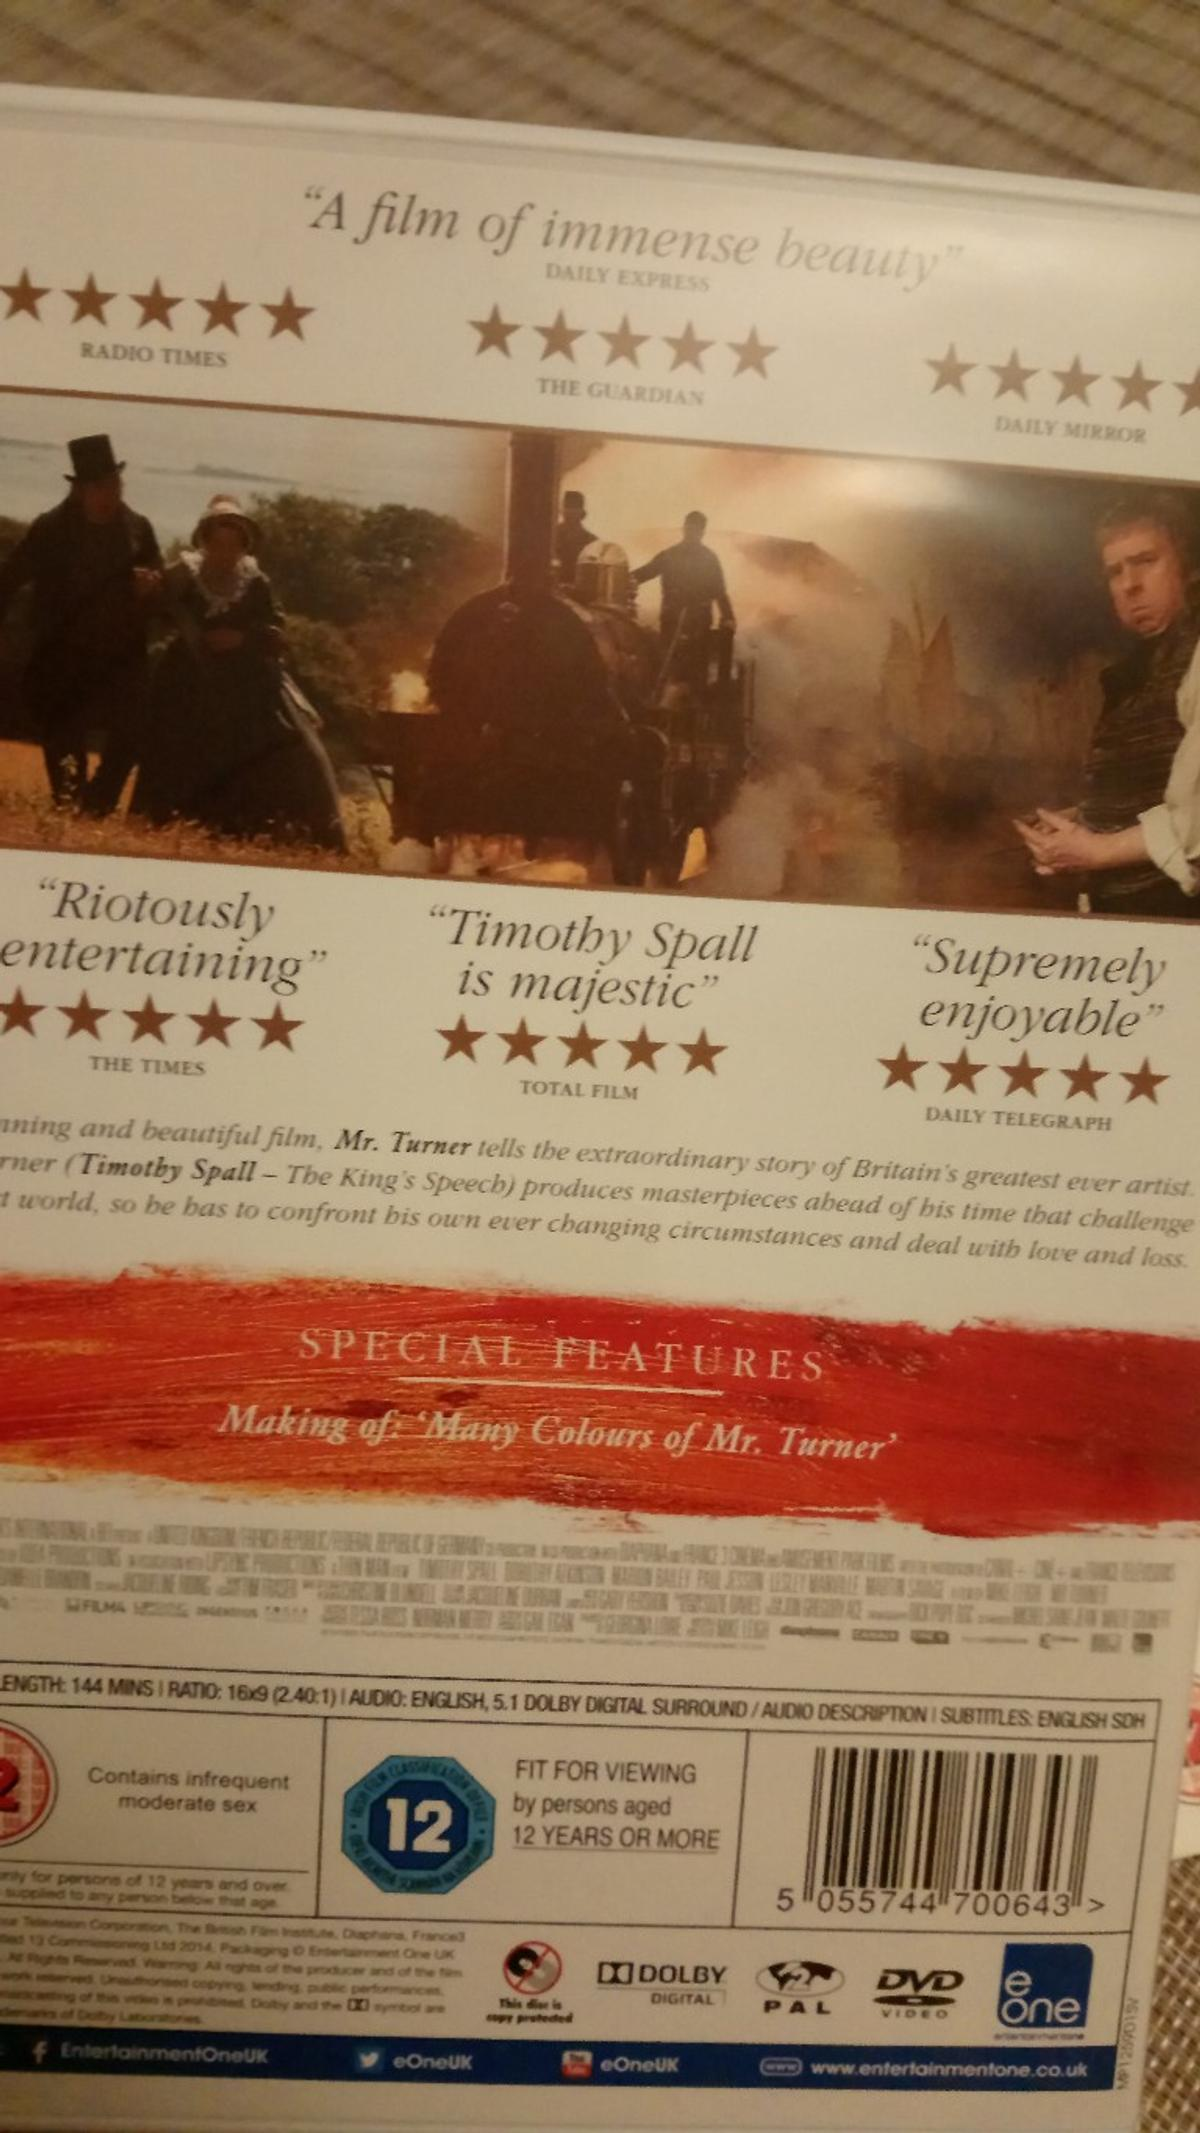 Certificate 12 movie Mr. Turner with Timothy Spall 144 mins long Please take a look at my other items Thank you for looking Cheryl ☺️